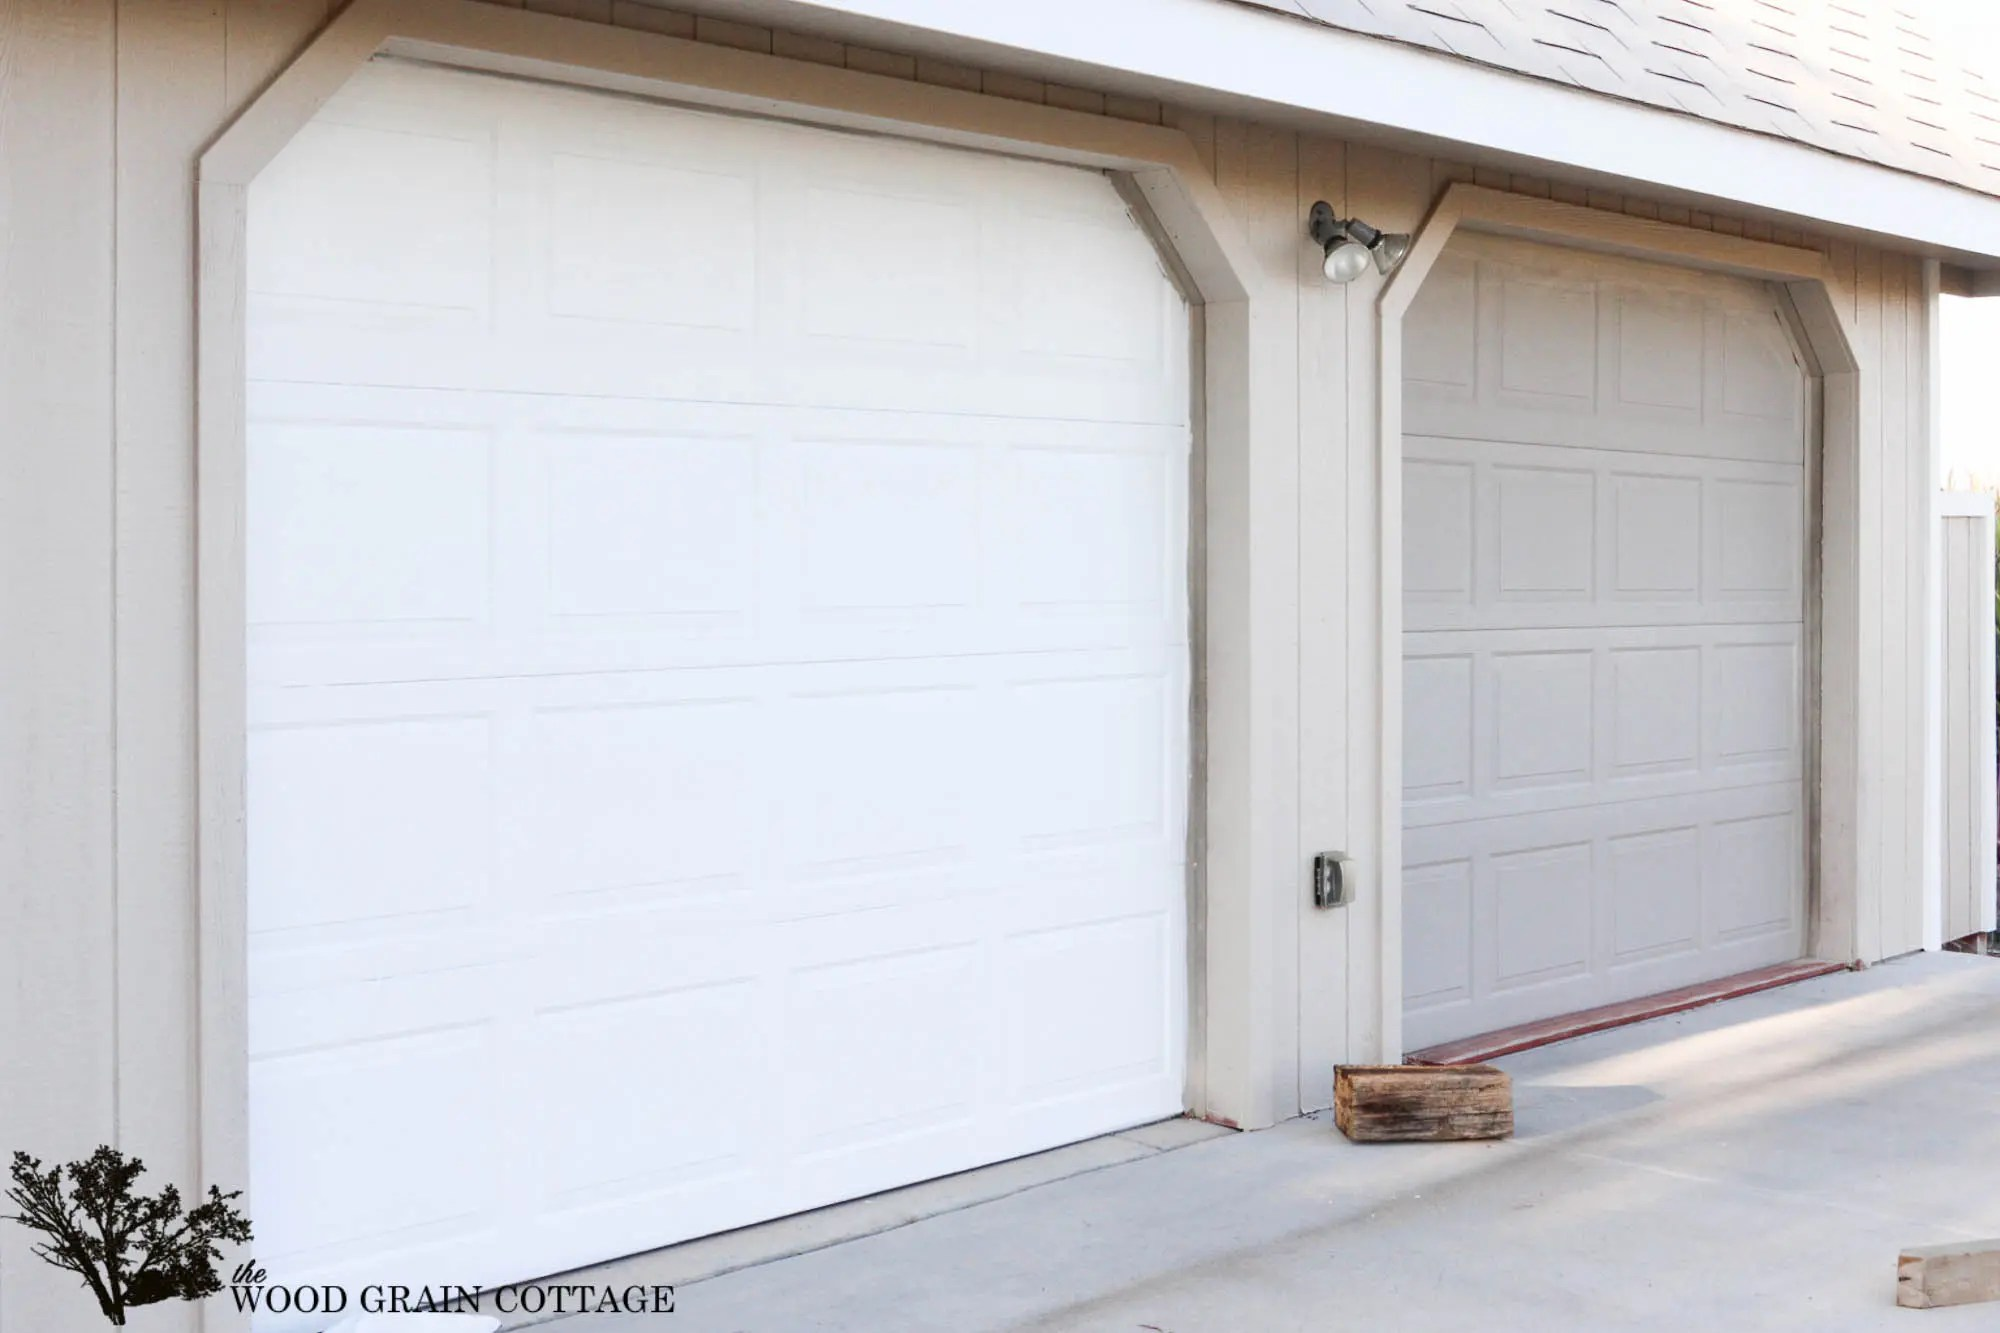 How To Paint Garage Doors Project Curb Appeal  The Wood Grain Cottage